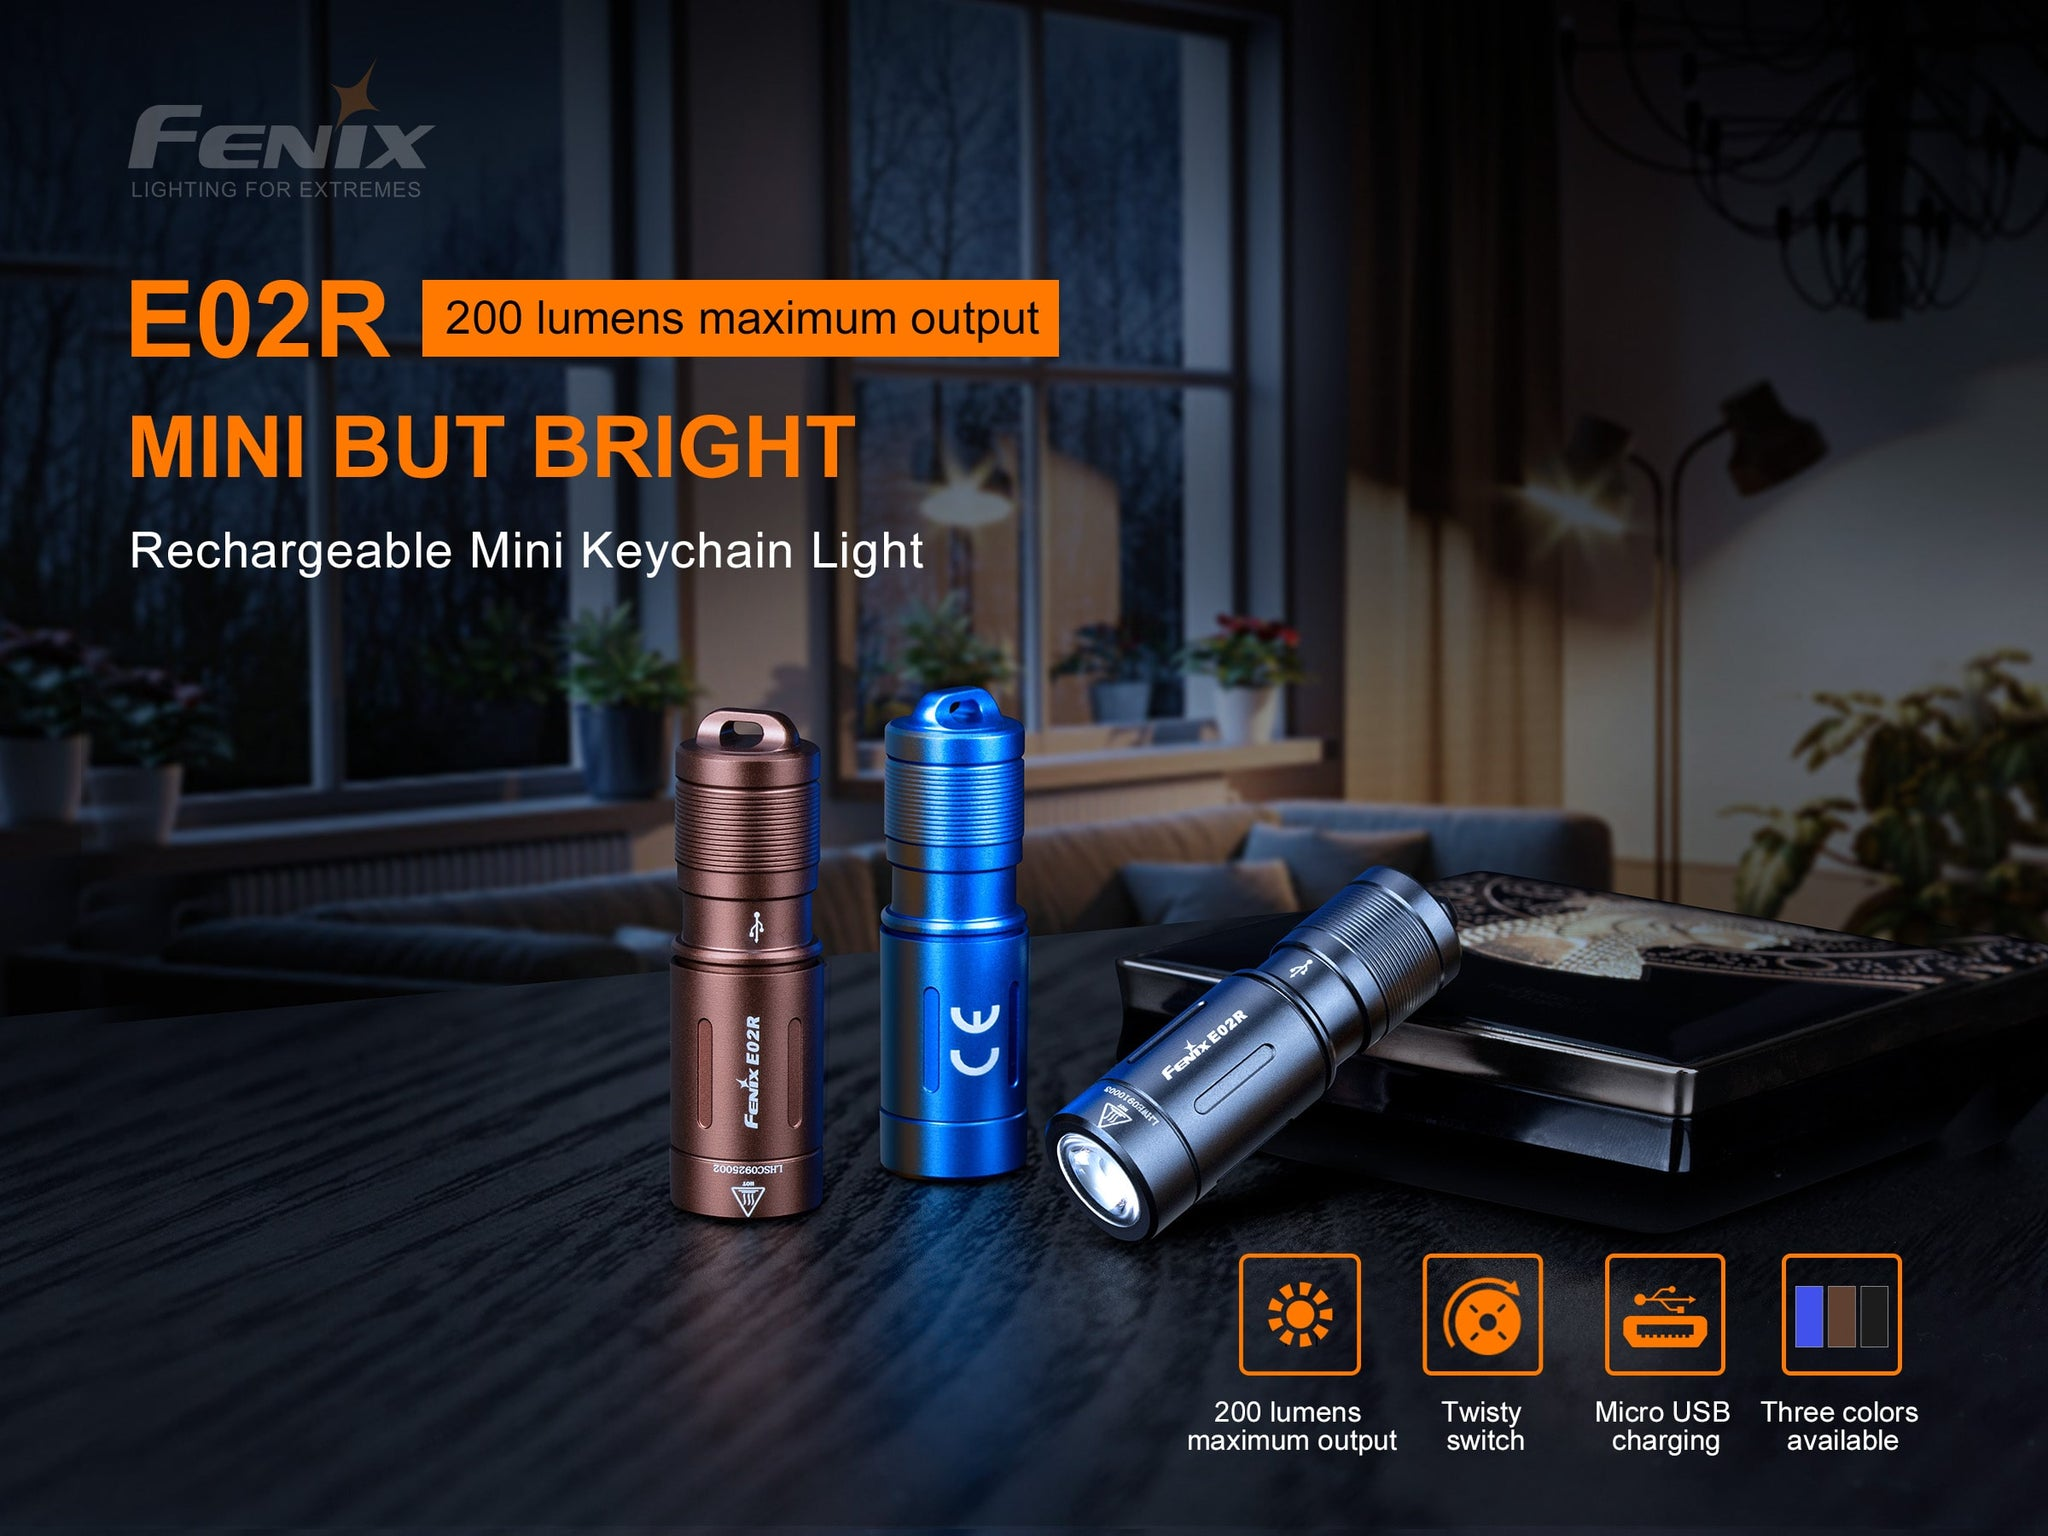 Fenix E02R LED Keychain Light, Compact Mini Keychain Torch, 200 Lumens EDC Rechargeable Small Torch, Thumb Size Powerful Torch Light for Outdoors